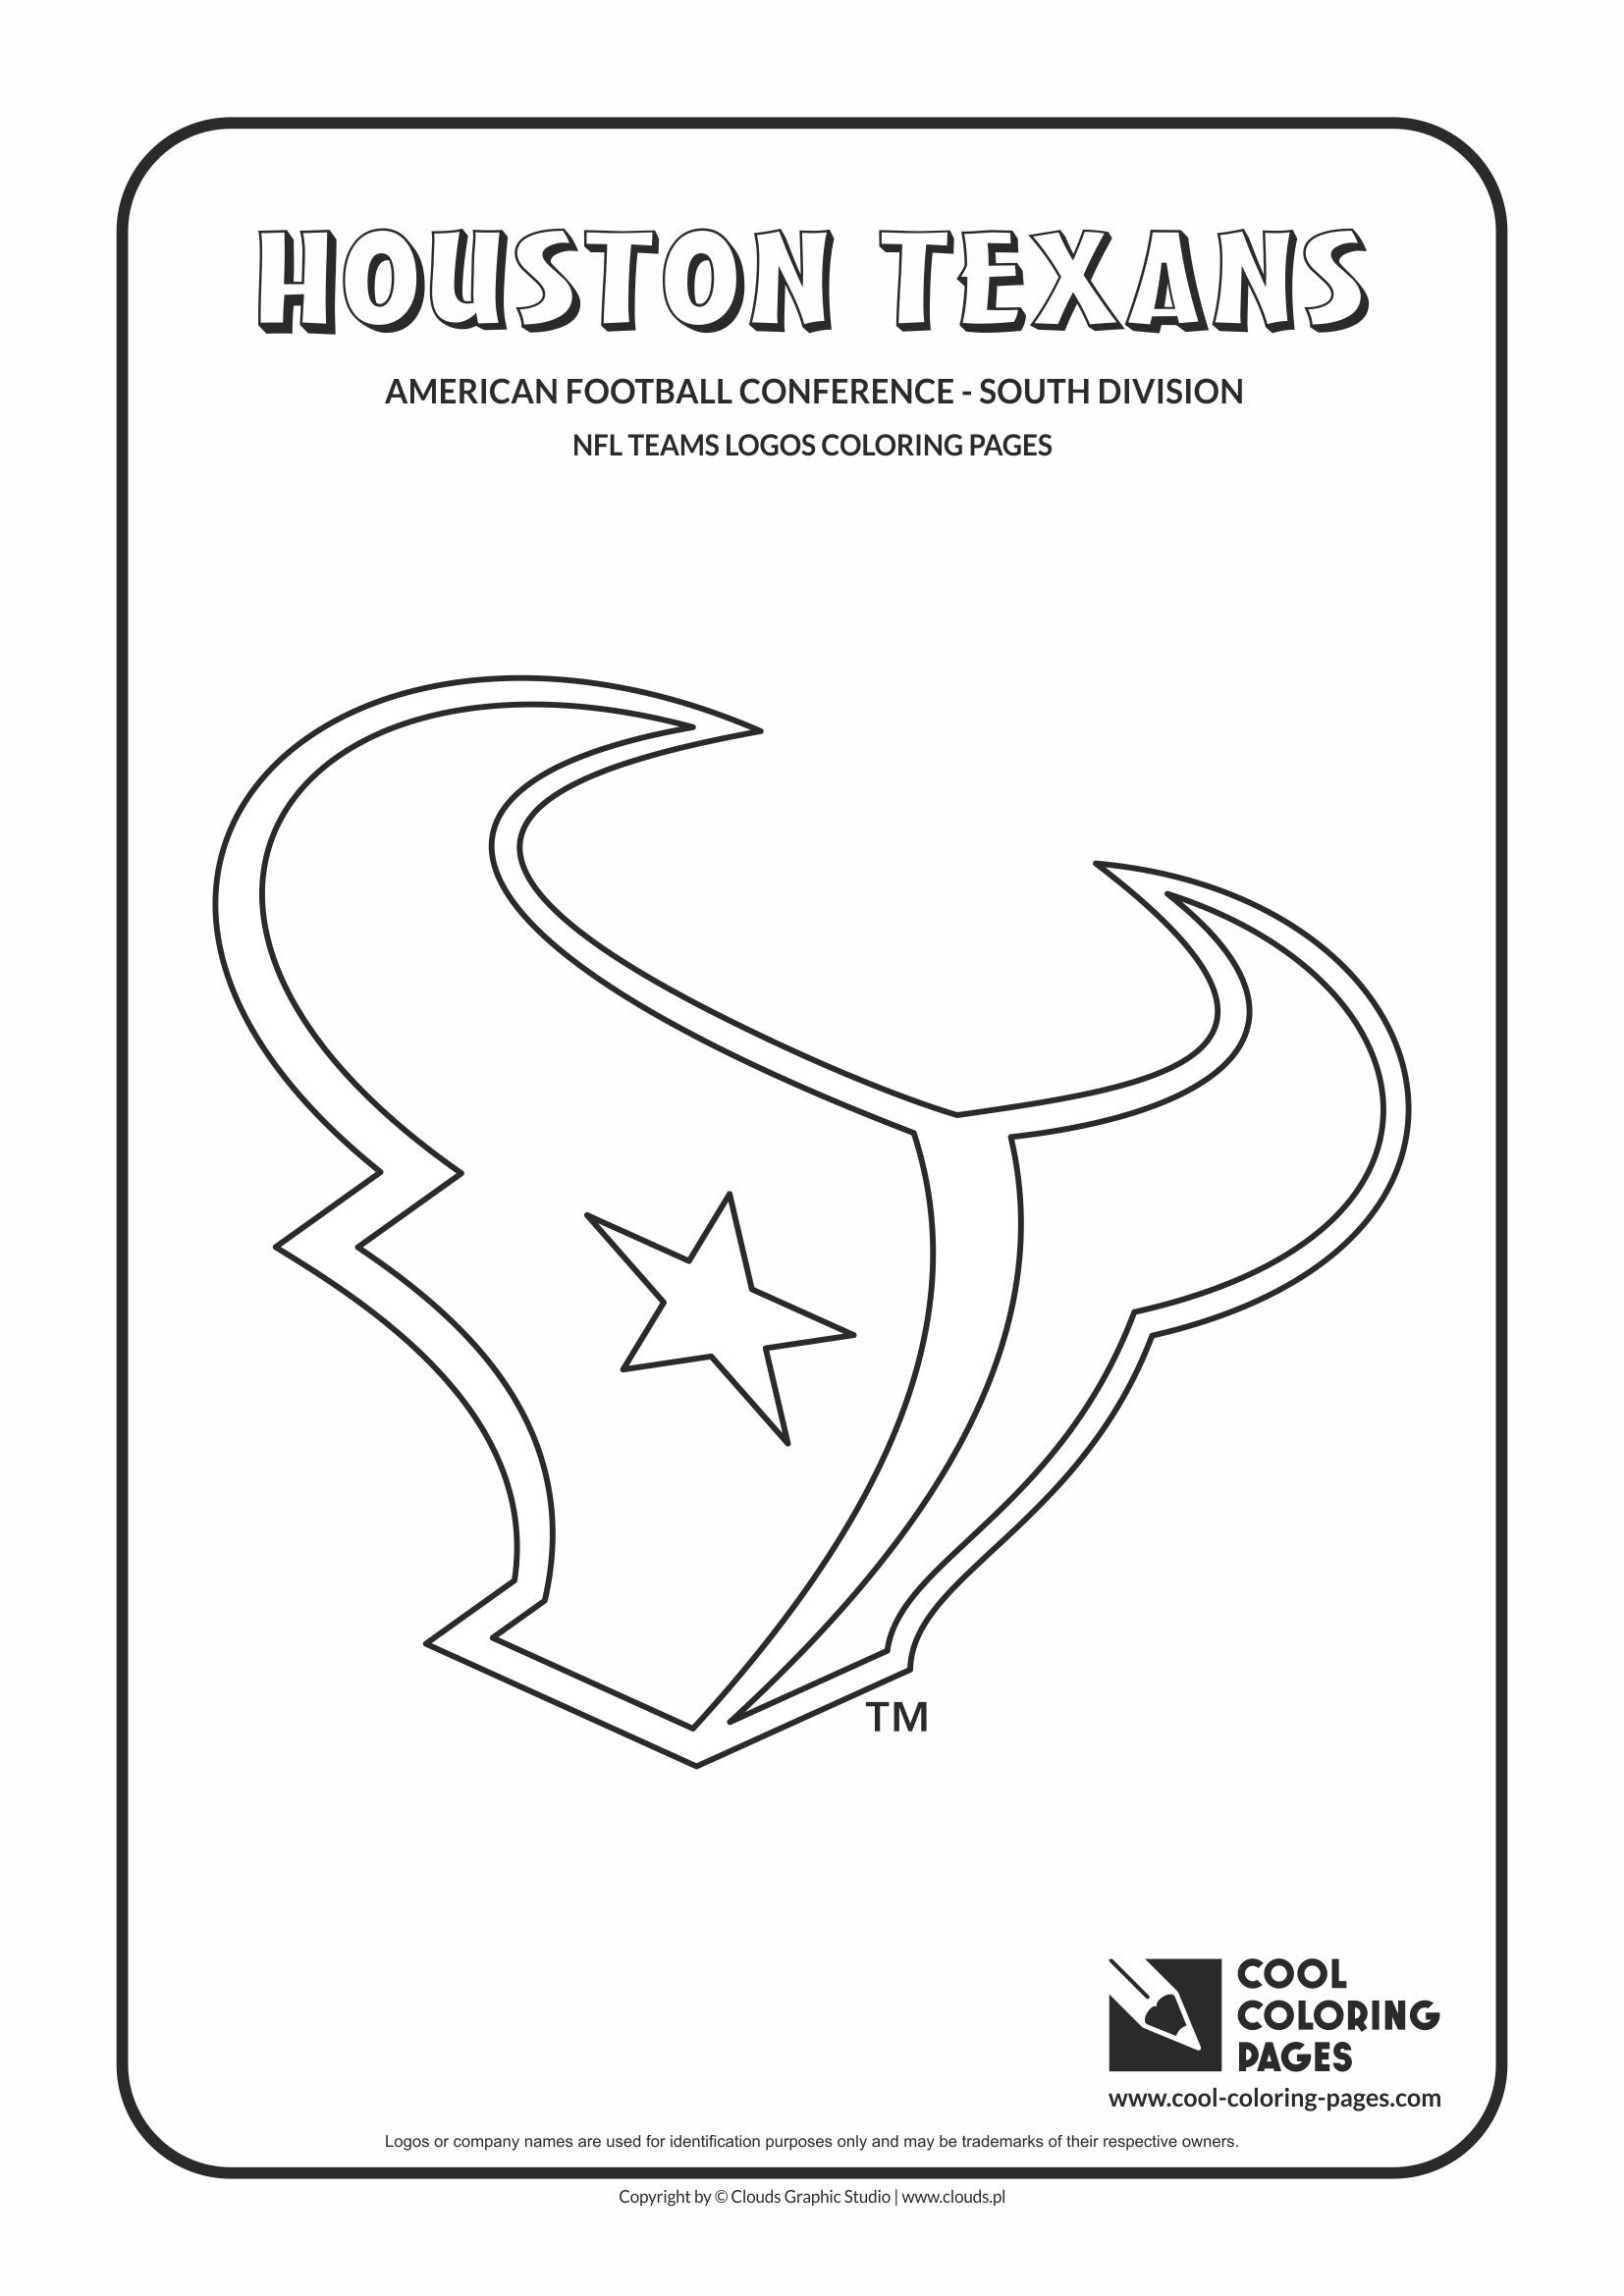 Houston Texans Nfl American Football Teams Logos Coloring Pages